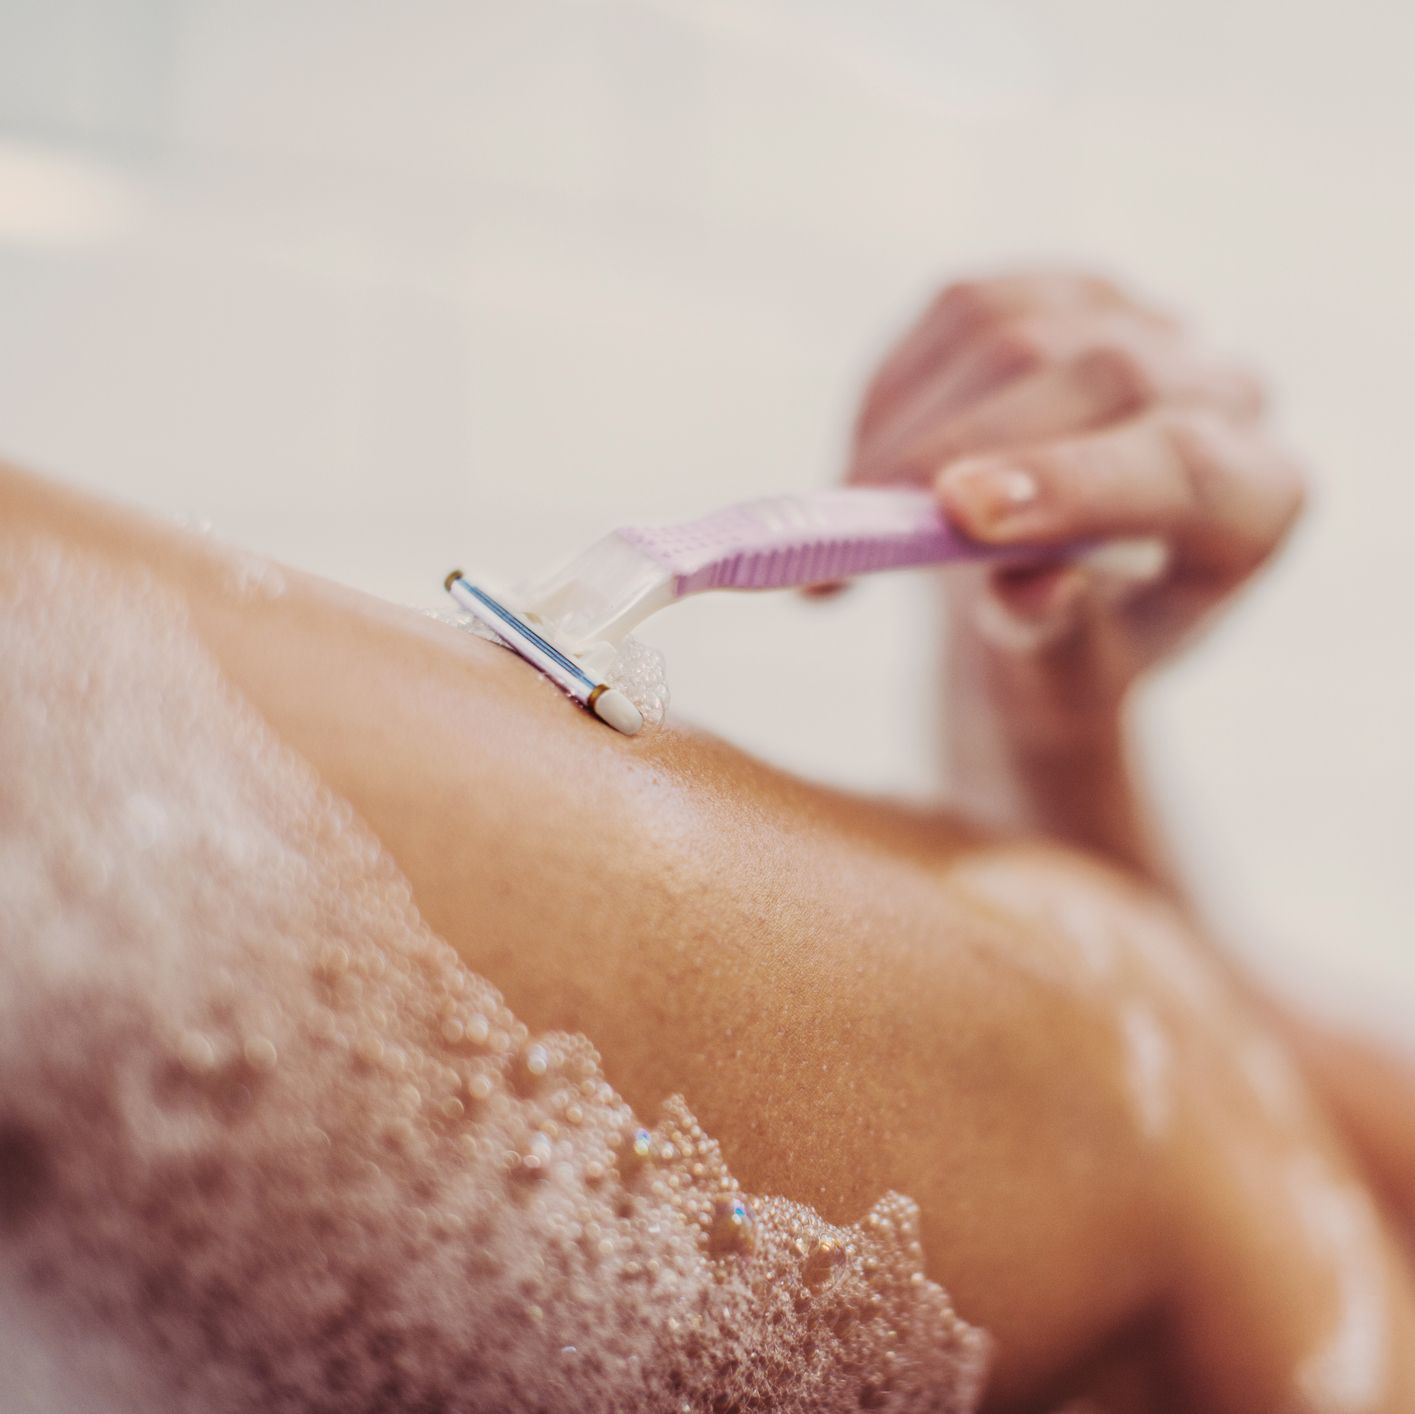 How To Get Rid Of Annoying Razor Bumps